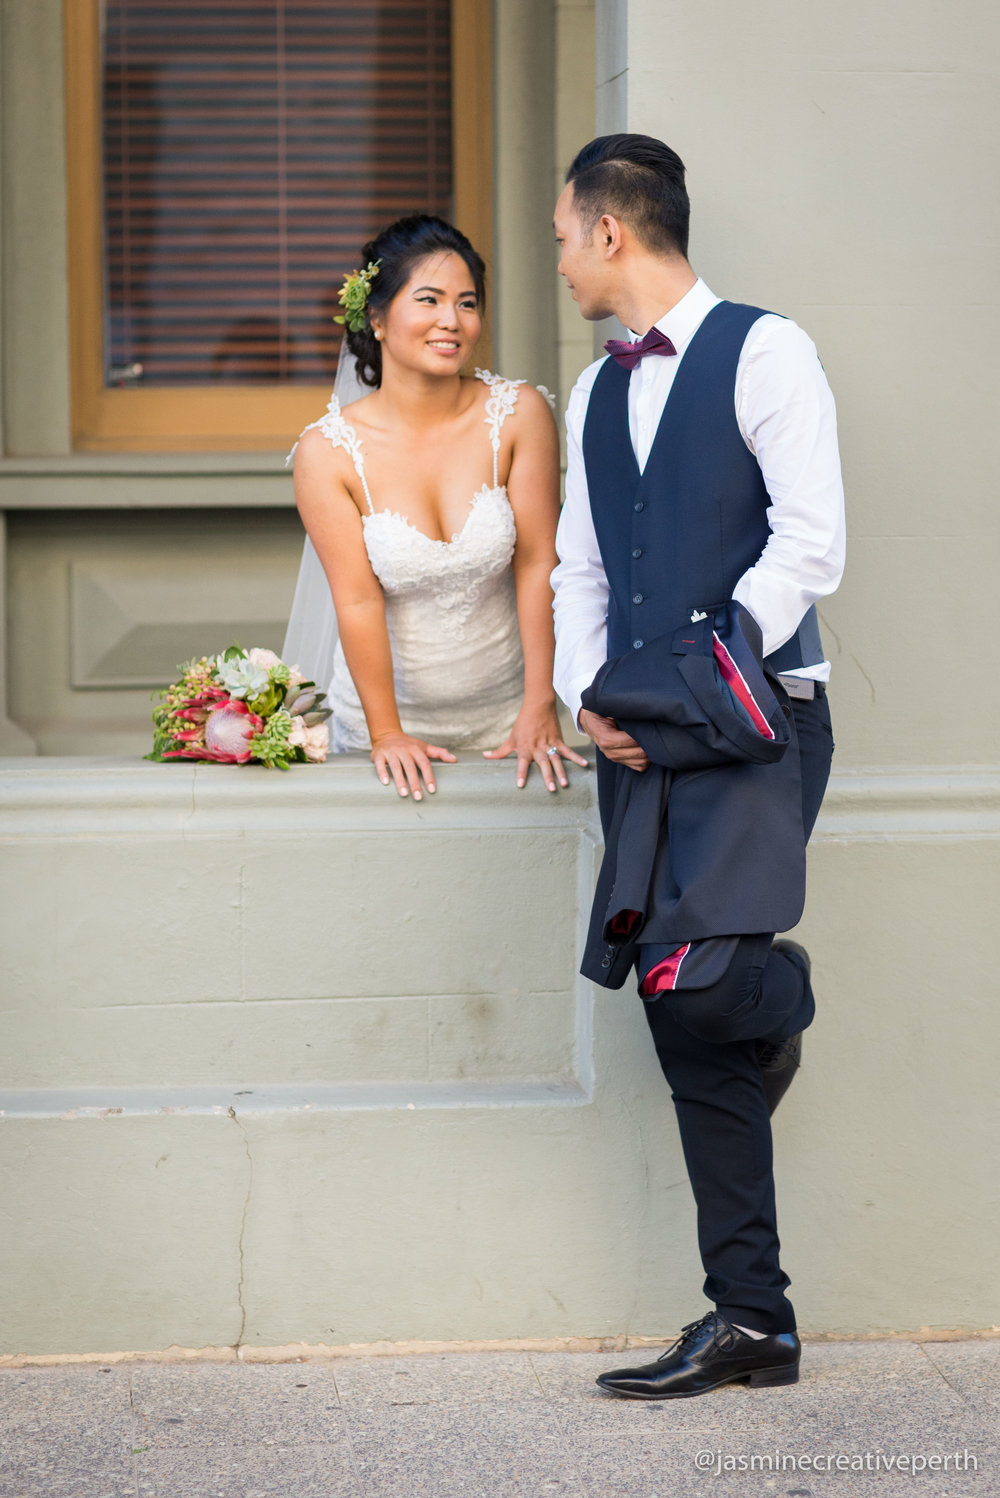 engagement_couple_photography_perth (8 of 12).jpg